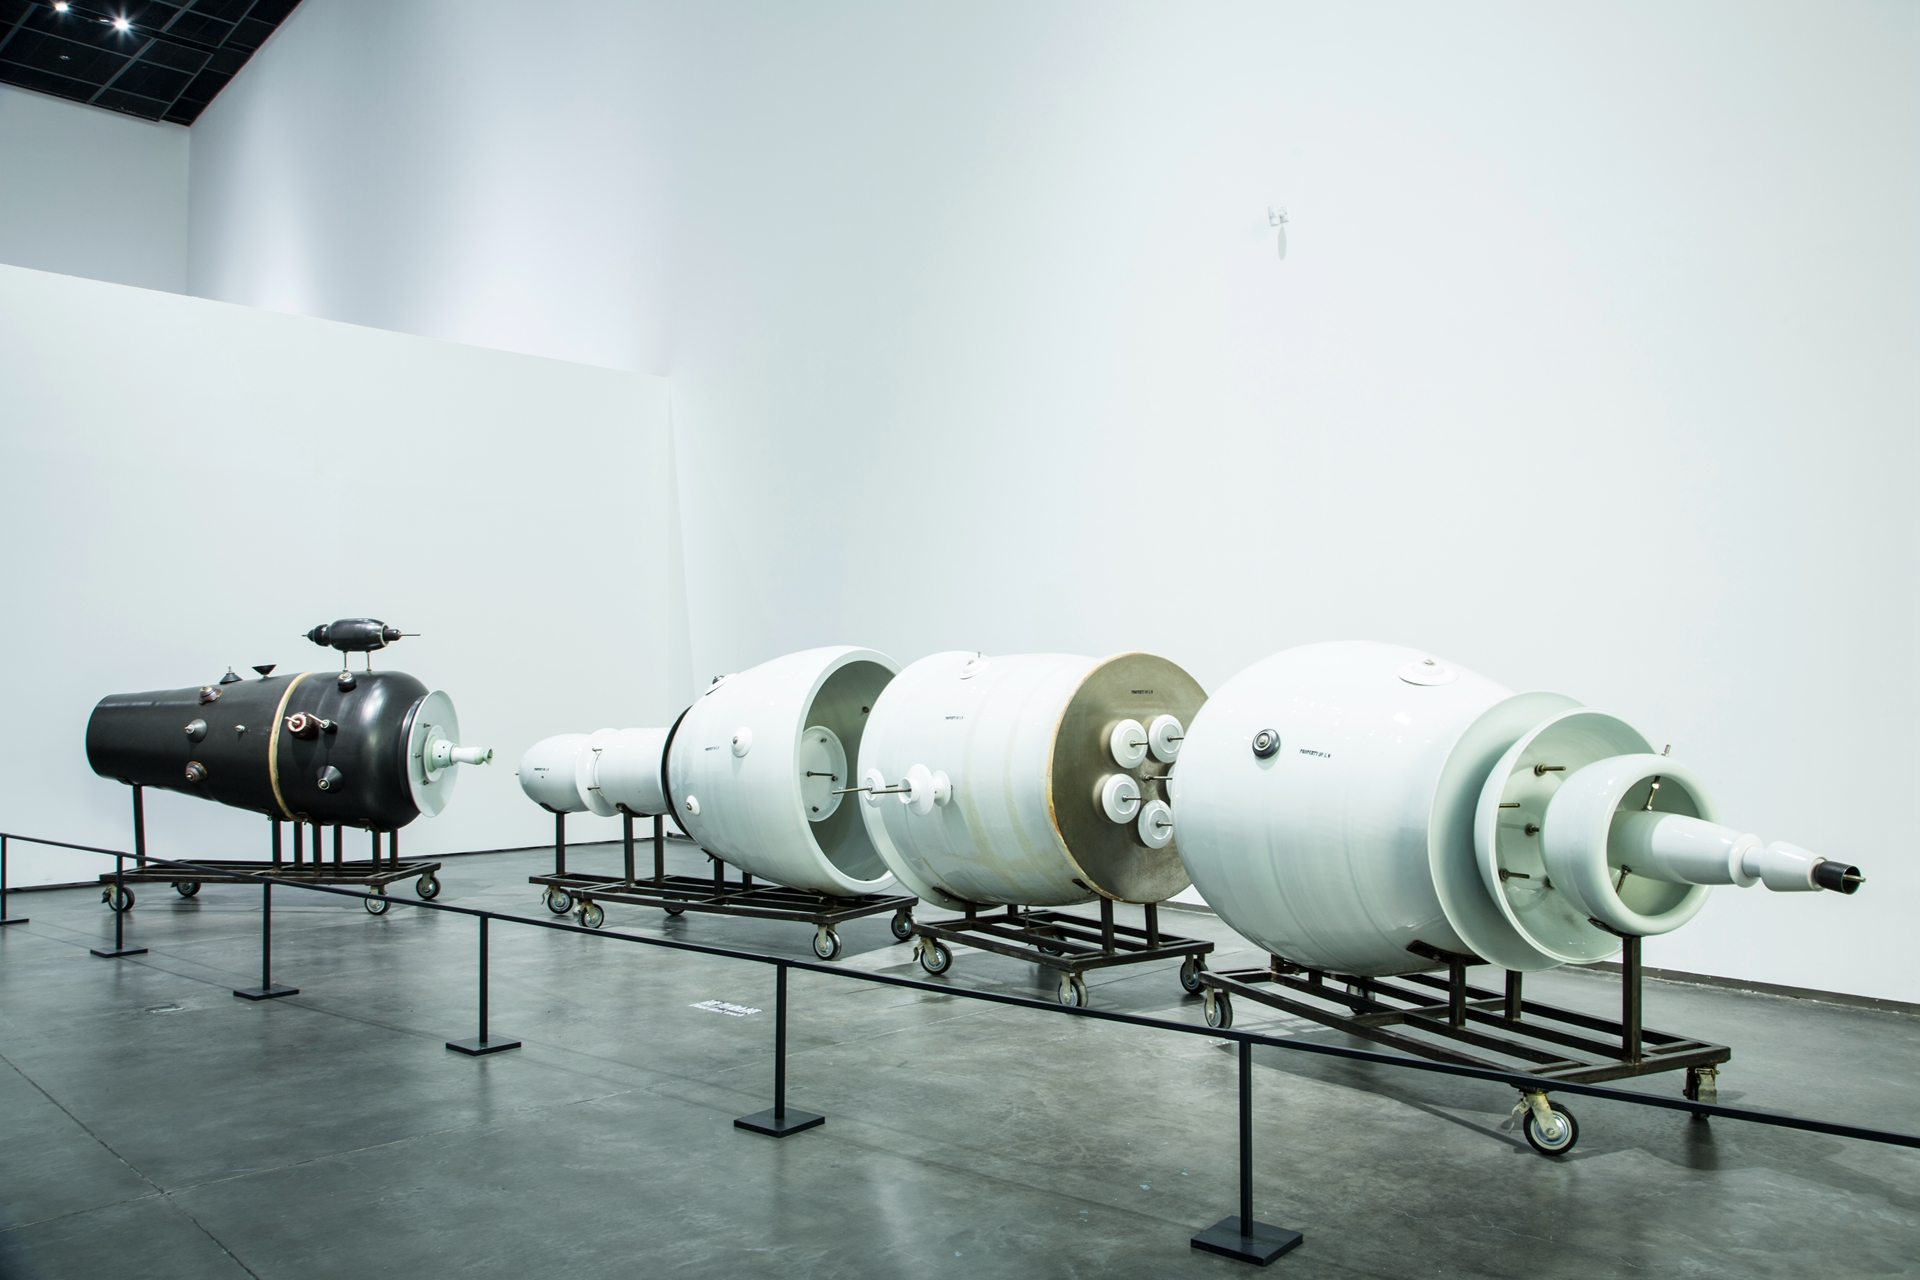 A sculpture installation of engine parts by artist Liu Wei shown as part of the Yinchuan Biennale